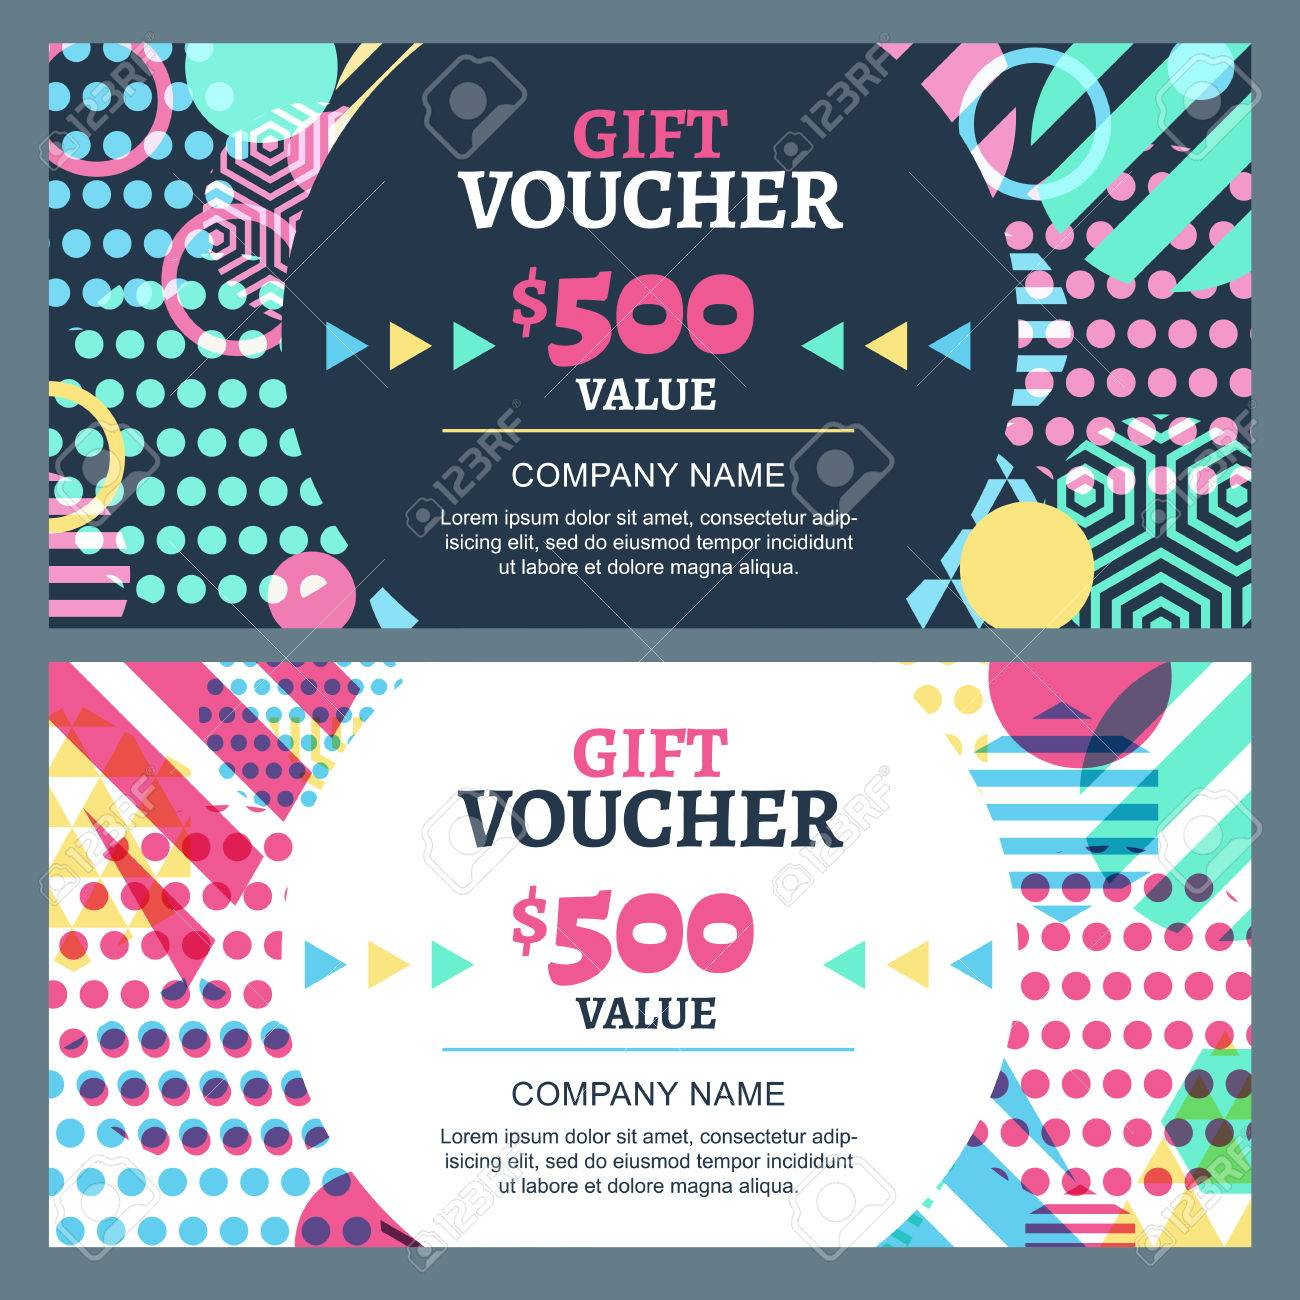 Vector gift voucher with colorful geometric pattern and round frame business card template abstract creative background concept for boutique fashion shop accessorize flyer banner design reheart Choice Image